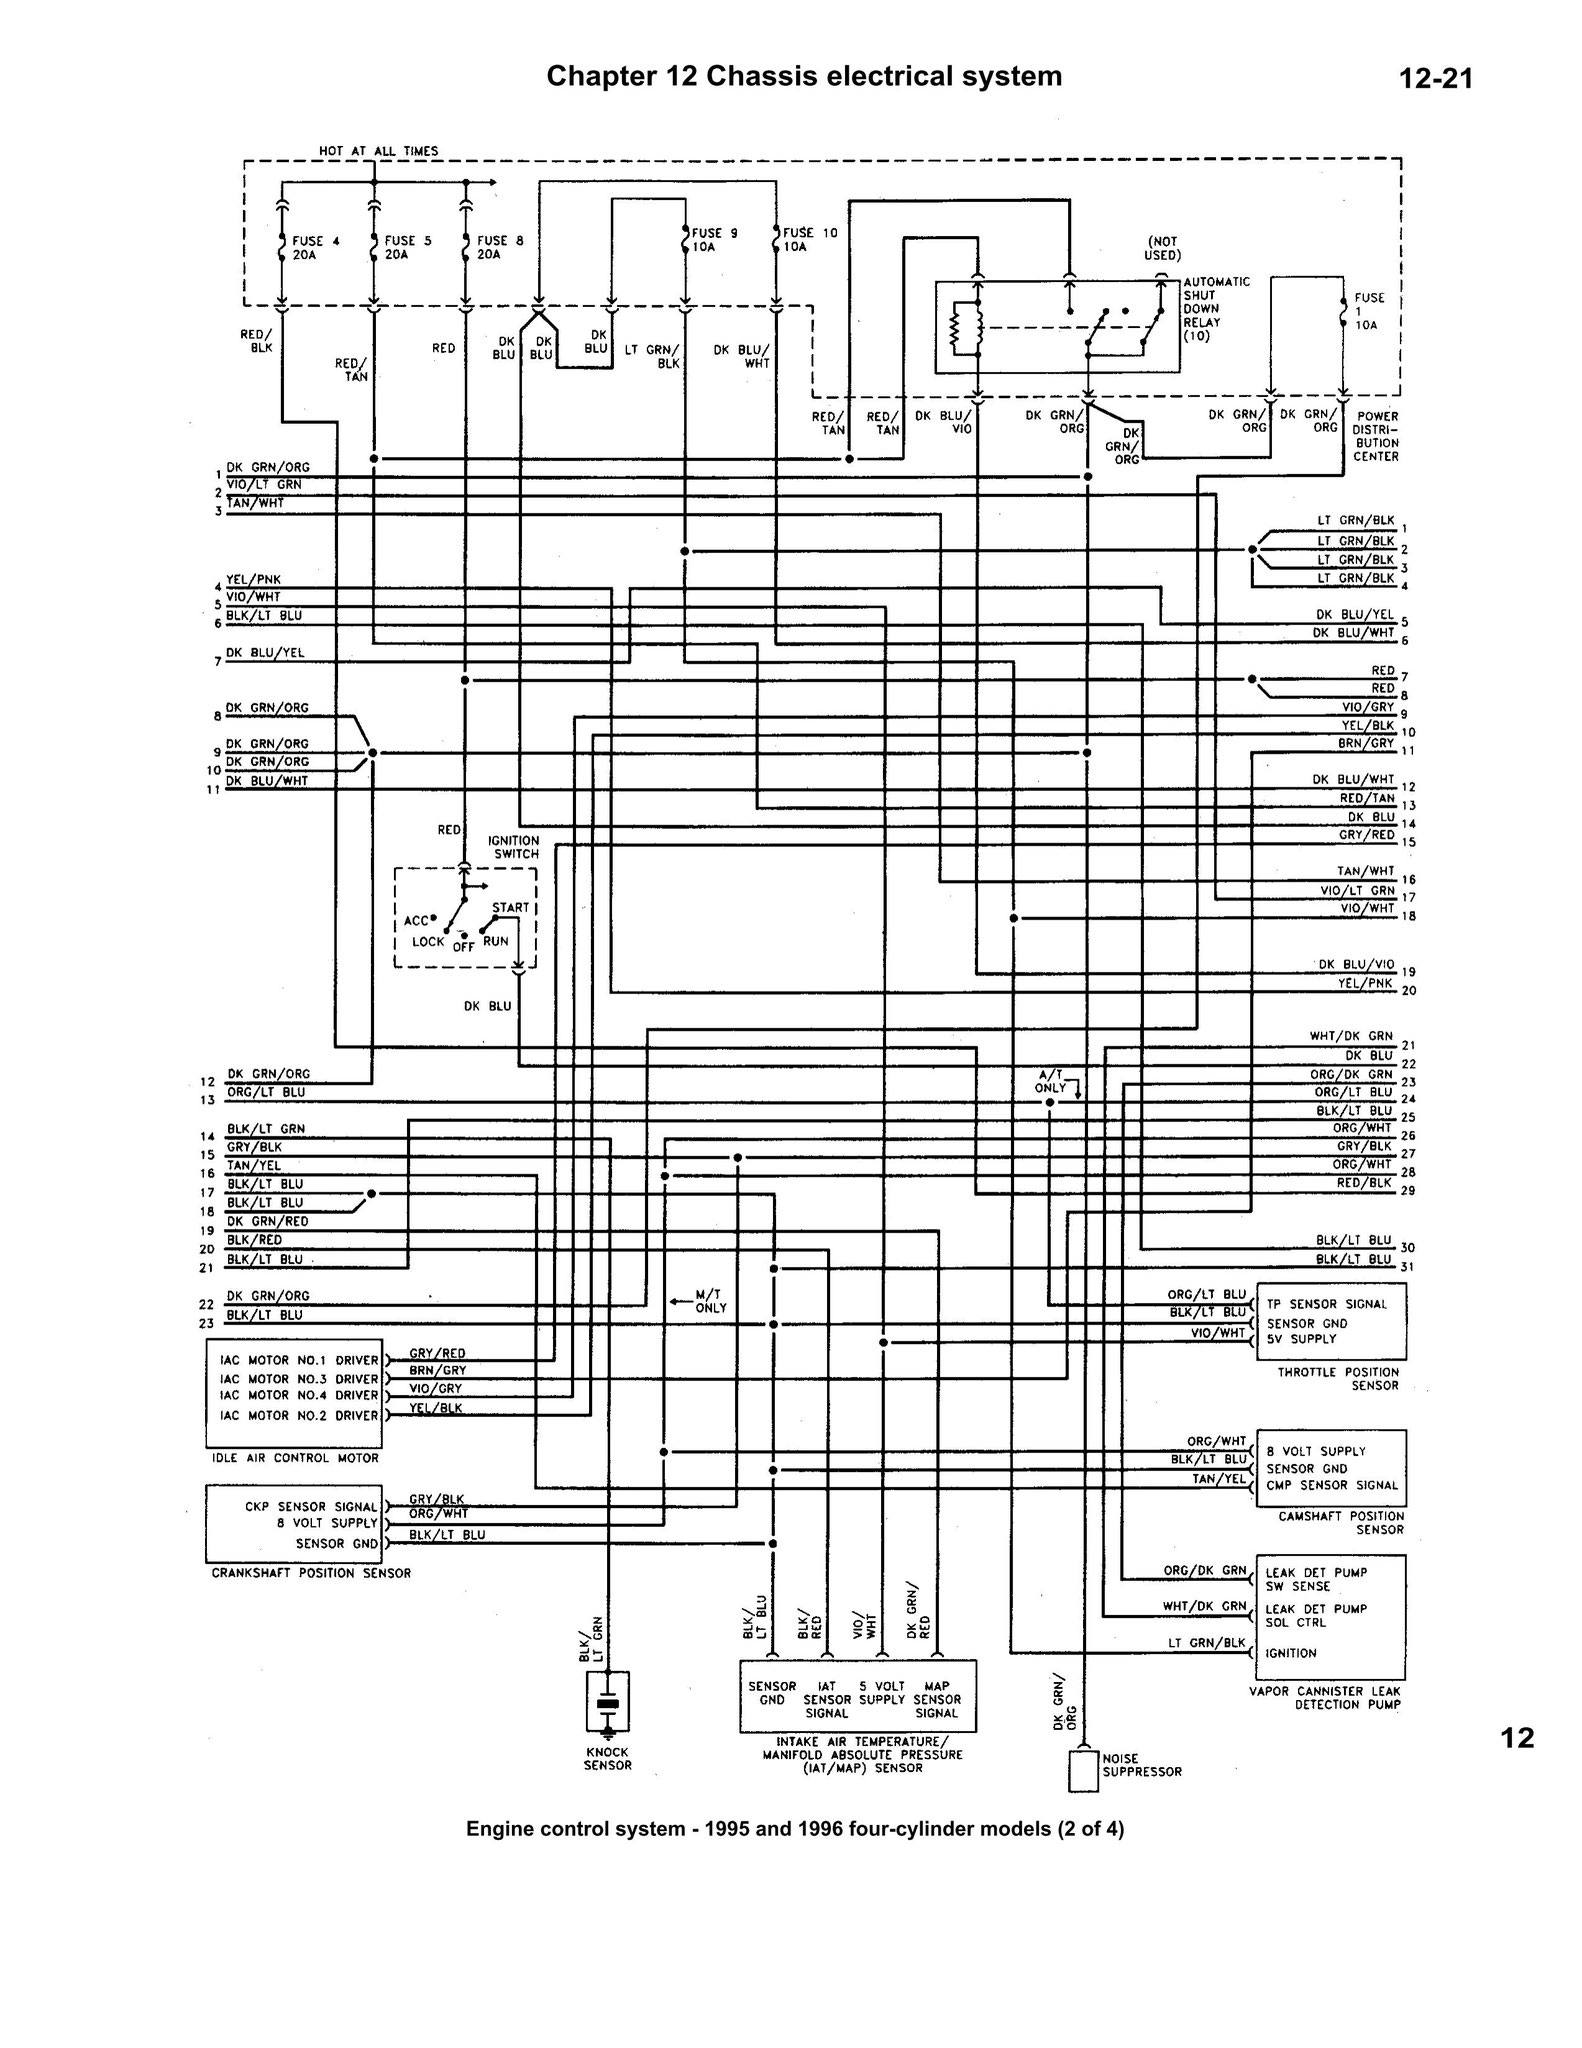 1996 audi a4 wiring diagram chrysler wiring diagrams  chrysler wiring diagrams